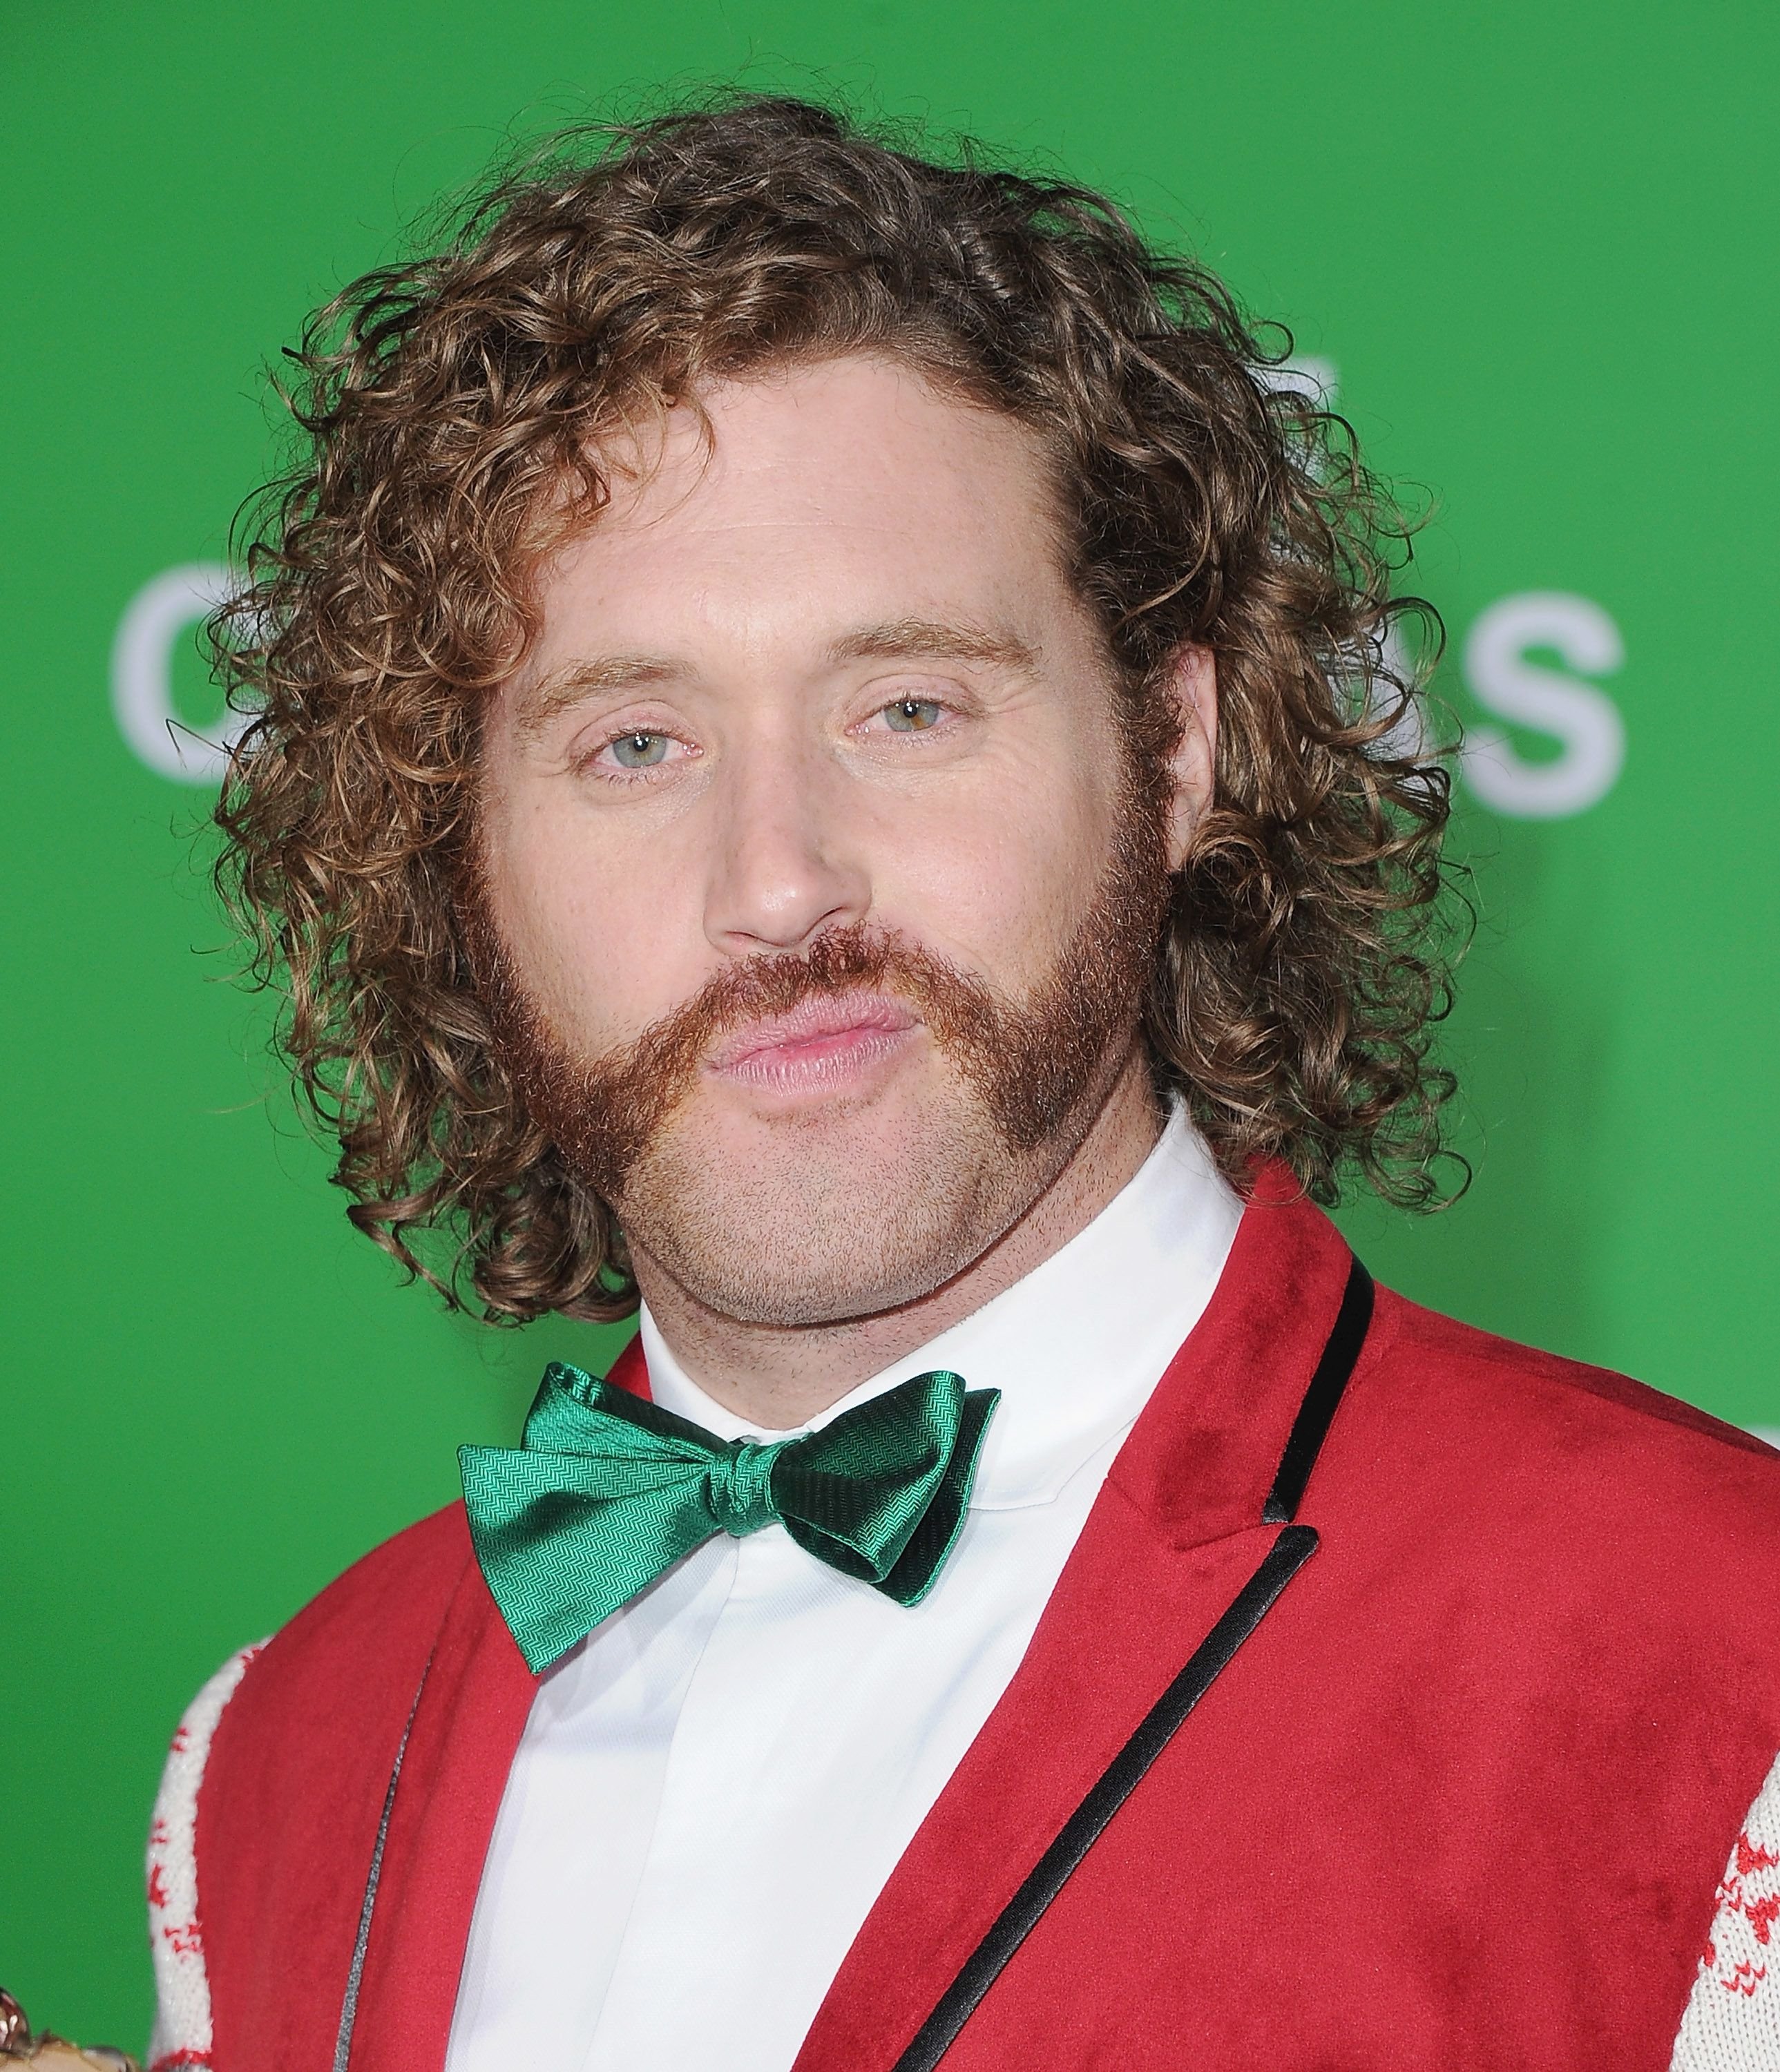 WESTWOOD, CA - DECEMBER 07:  Actor T.J. Miller arrives at the Los Angeles Premiere 'Office Christmas Party' at Regency Village Theatre on December 7, 2016 in Westwood, California.  (Photo by Jon Kopaloff/FilmMagic)